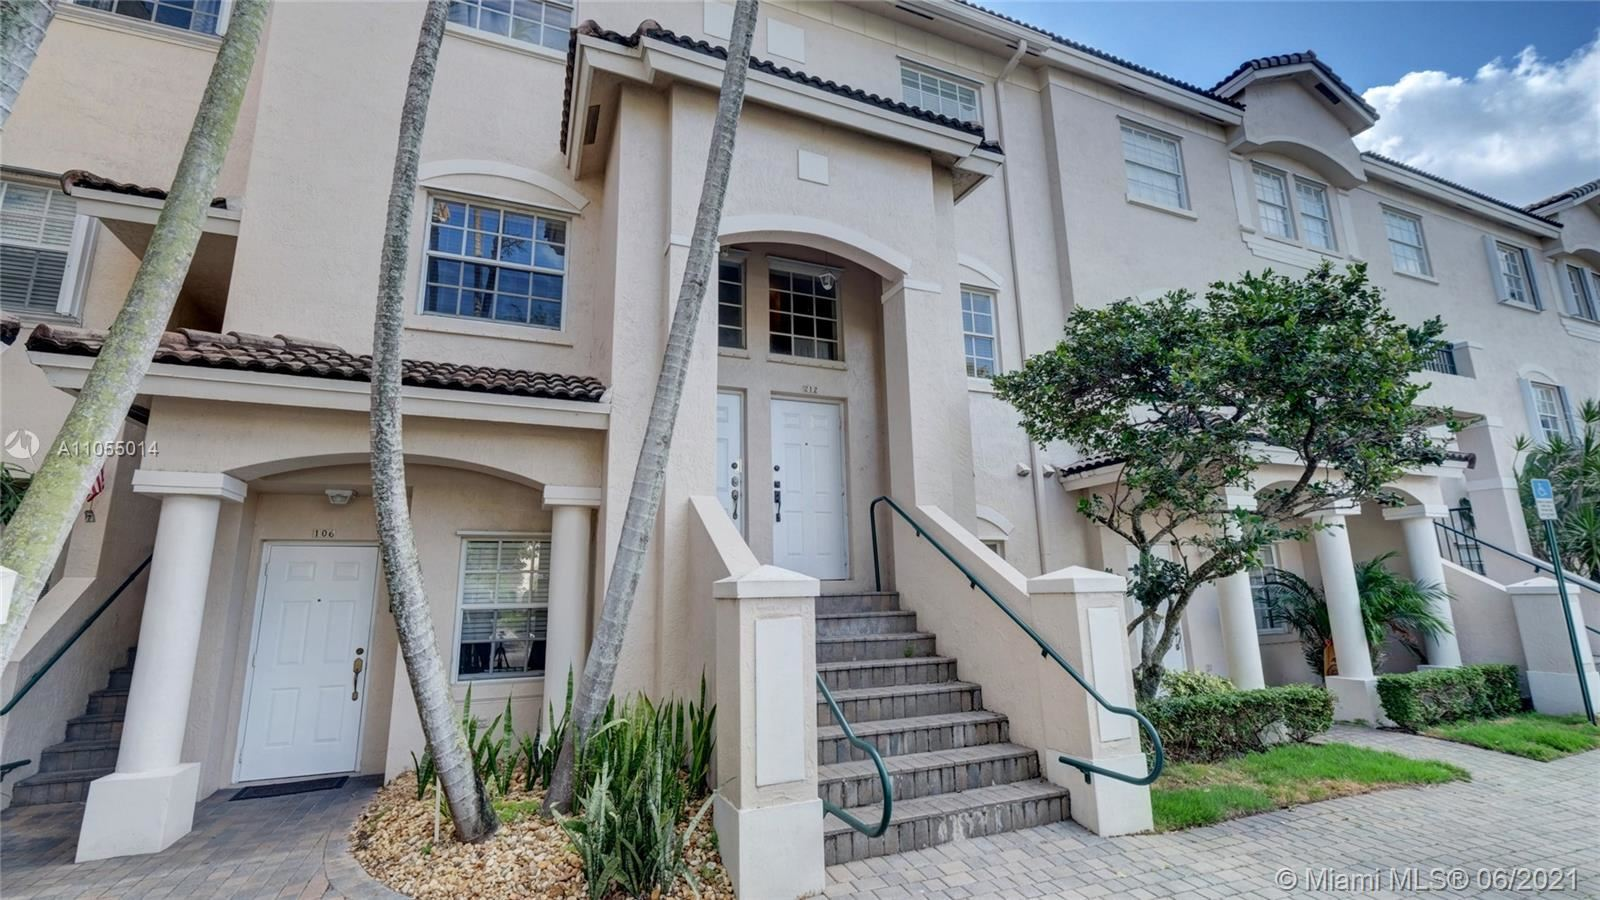 5670 NW 116th Ave #212, Doral, FL 33178 - #: A11055014